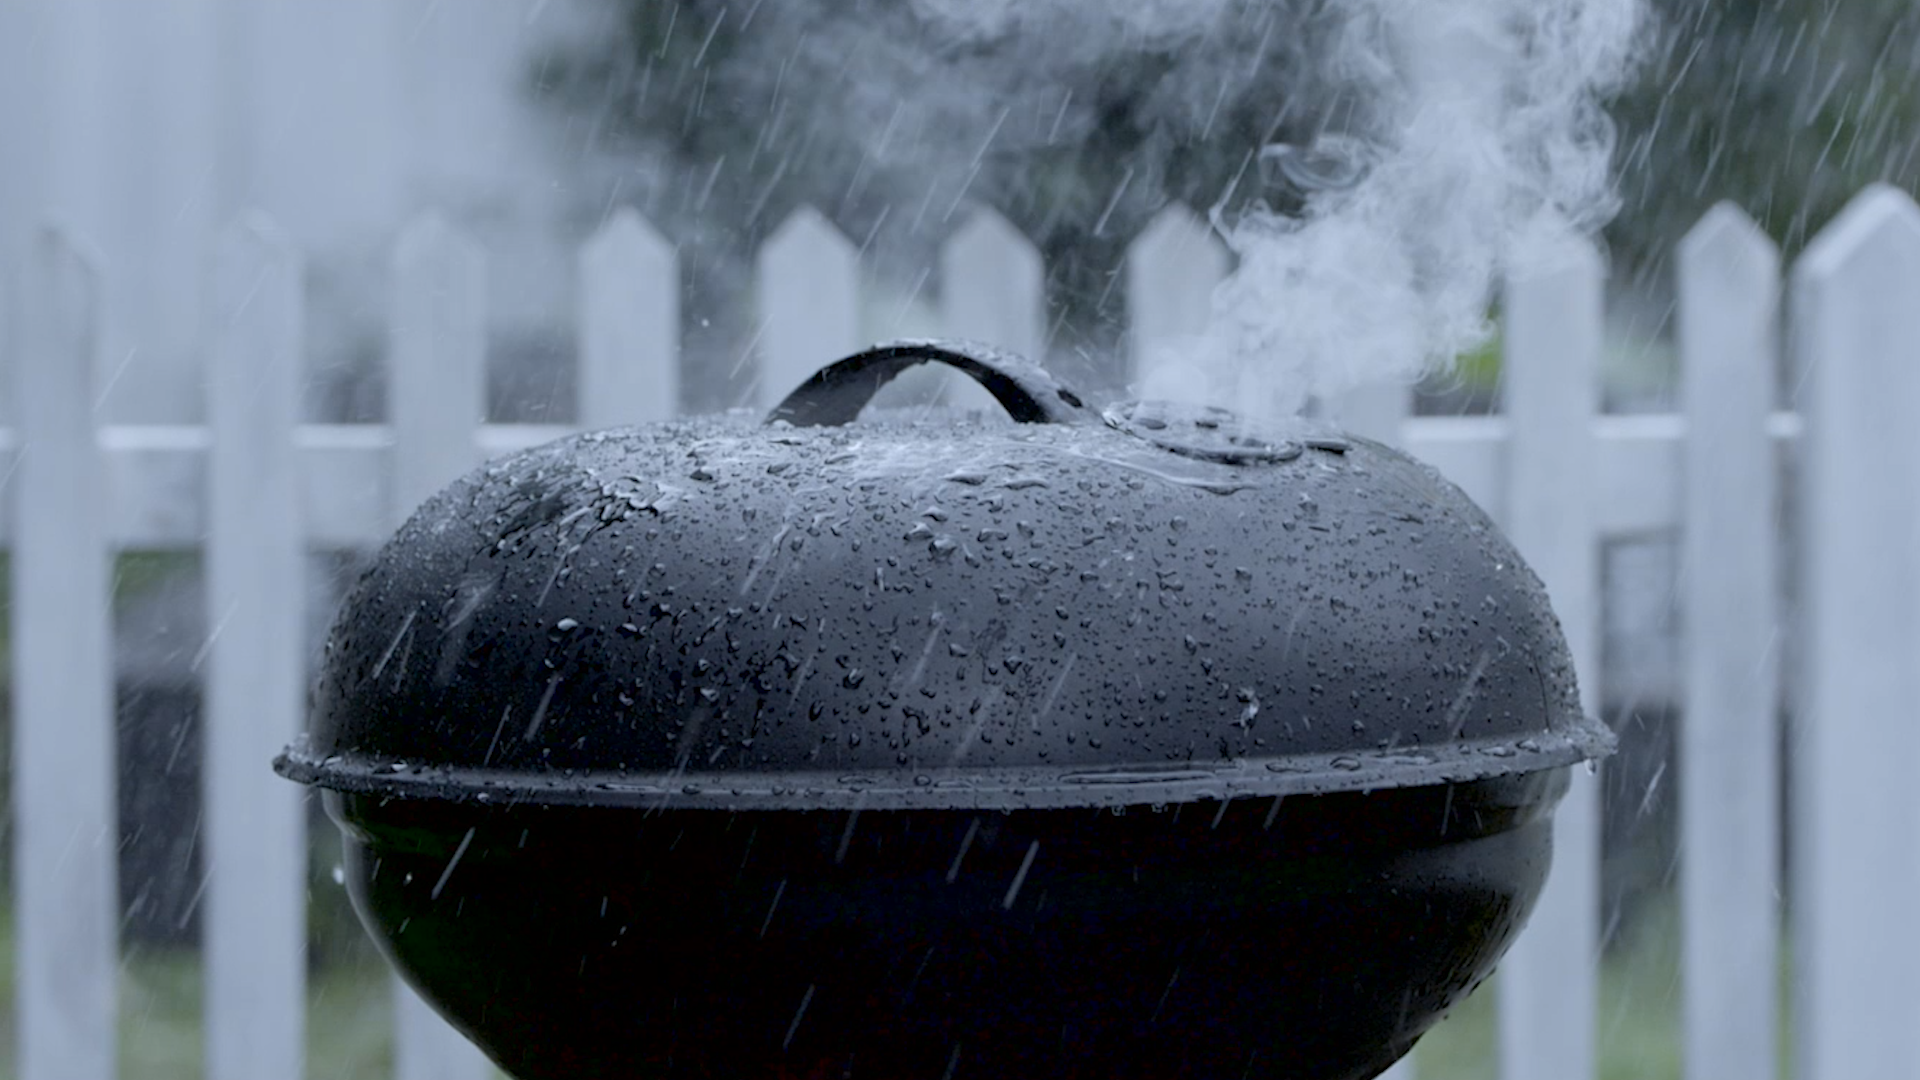 A grill in rainy weather